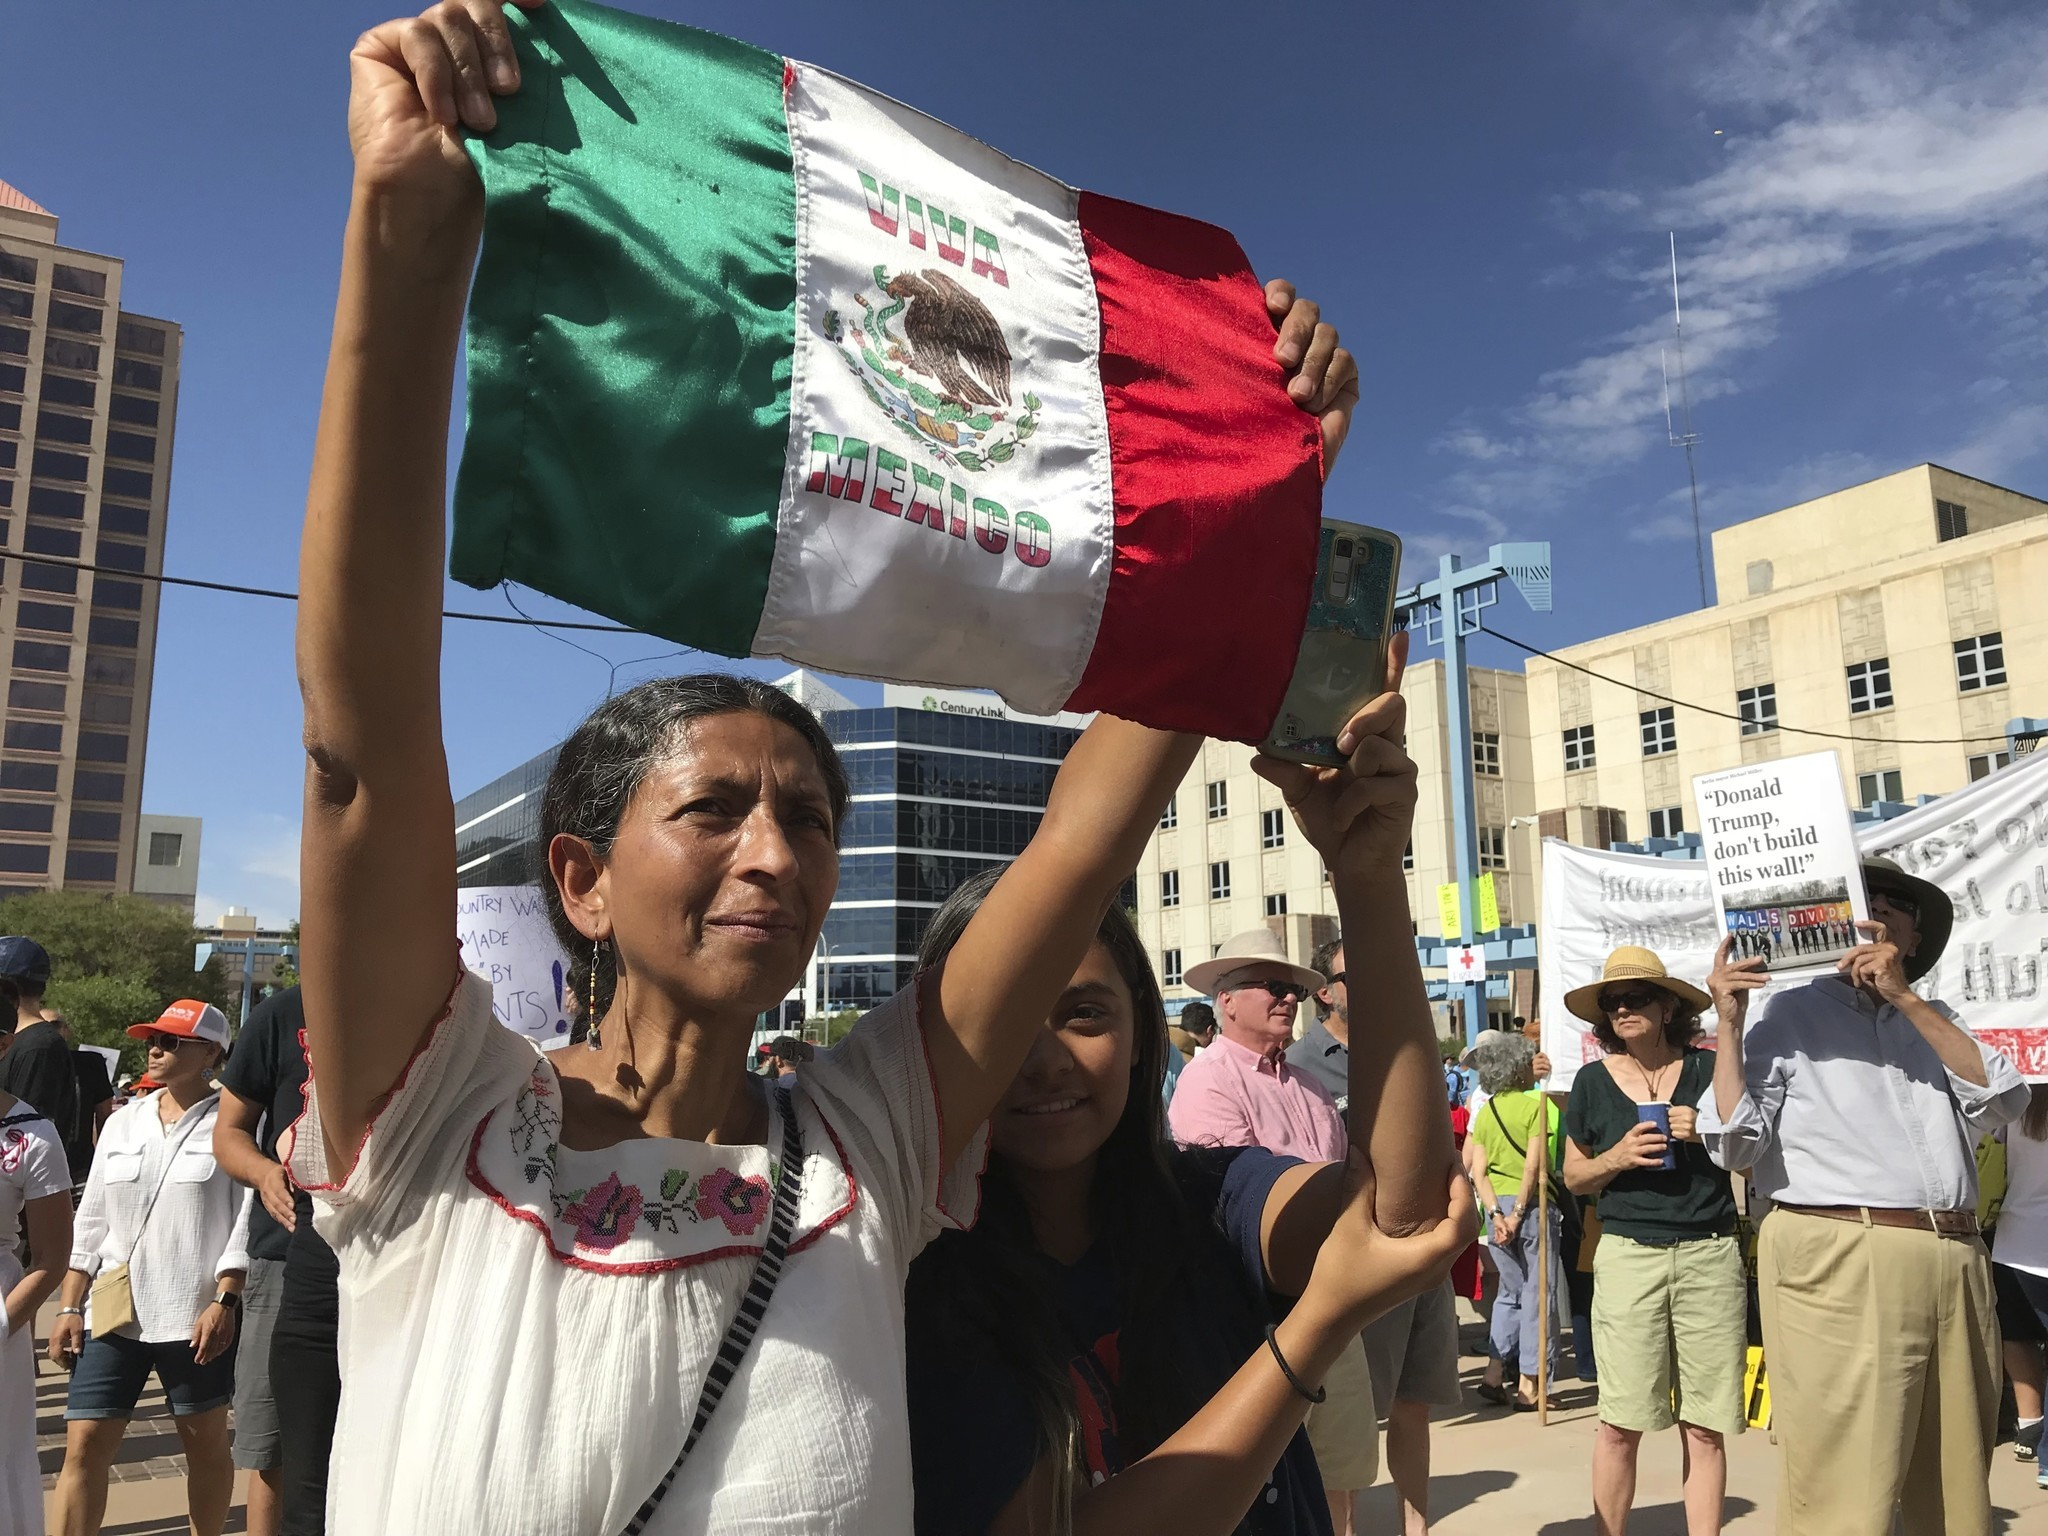 ALBUQUERQUE: Margarita Perez, with her daughter by her side, holds up a Mexican flag during a protest on Civic Plaza. Susan Montoya Bryan / Associated Press